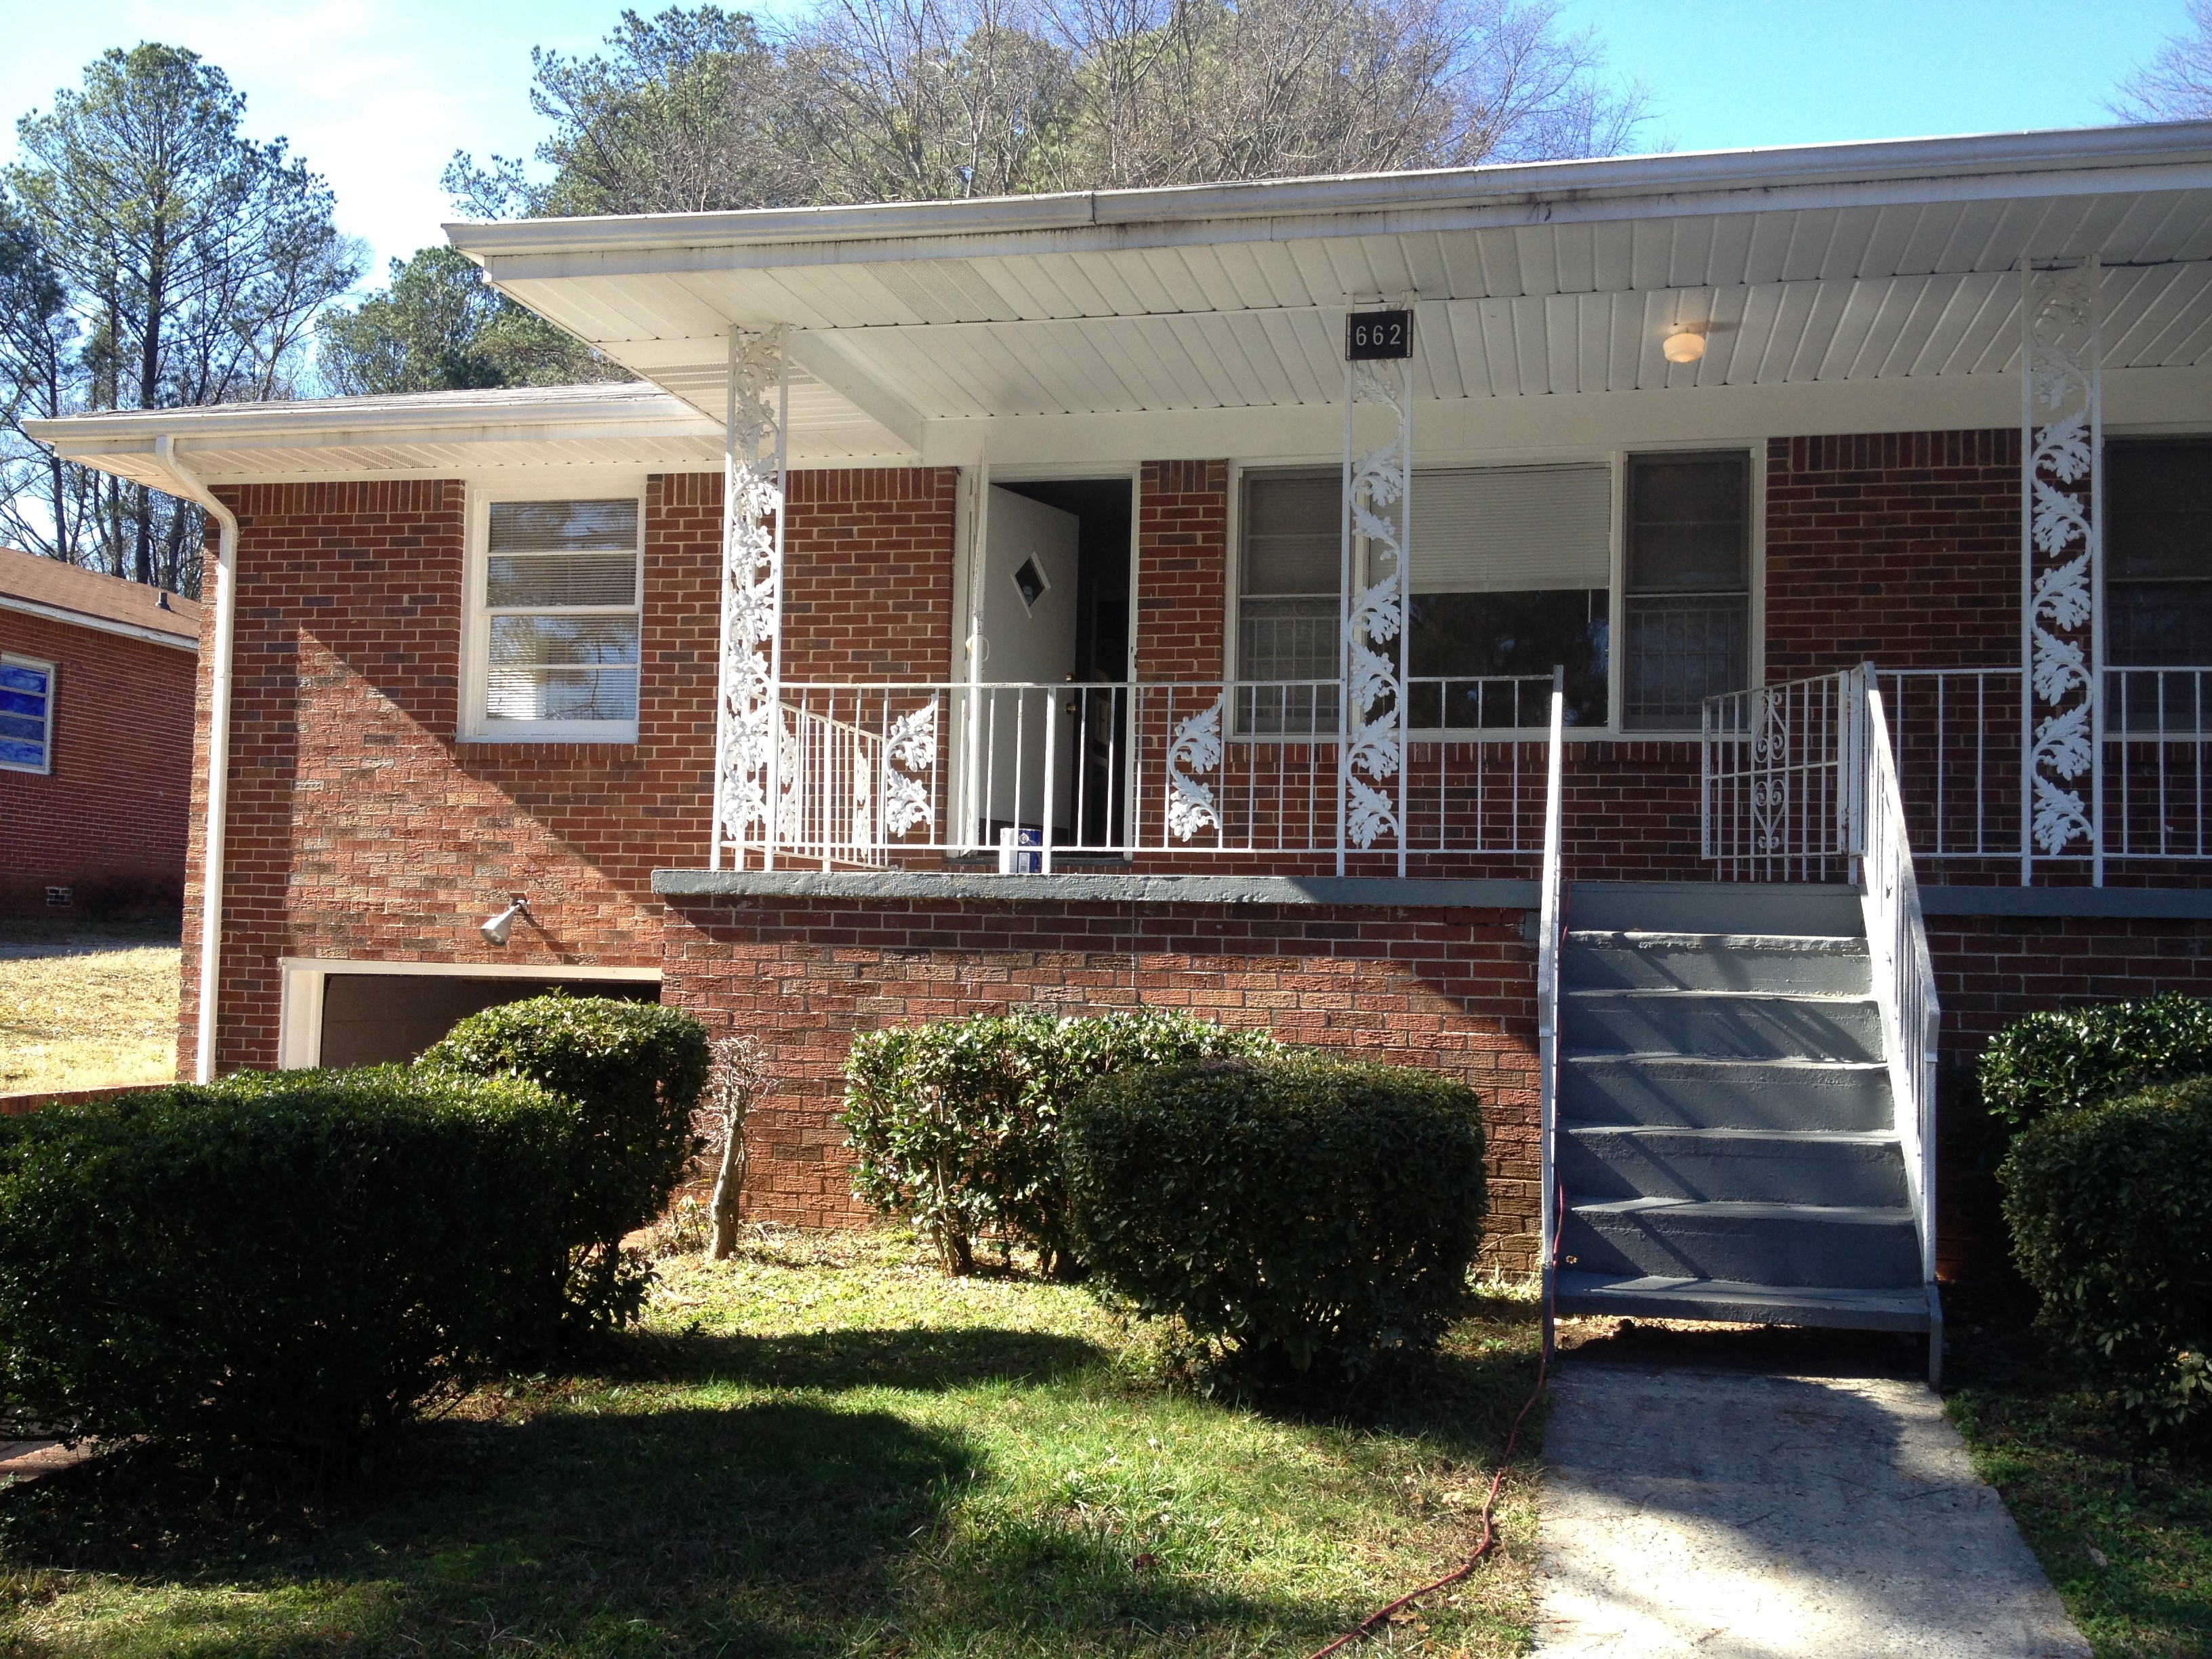 474 Center Hill Ave Nw Atlanta Ga 30318 3 Bedroom Apartment For Rent Padmapper